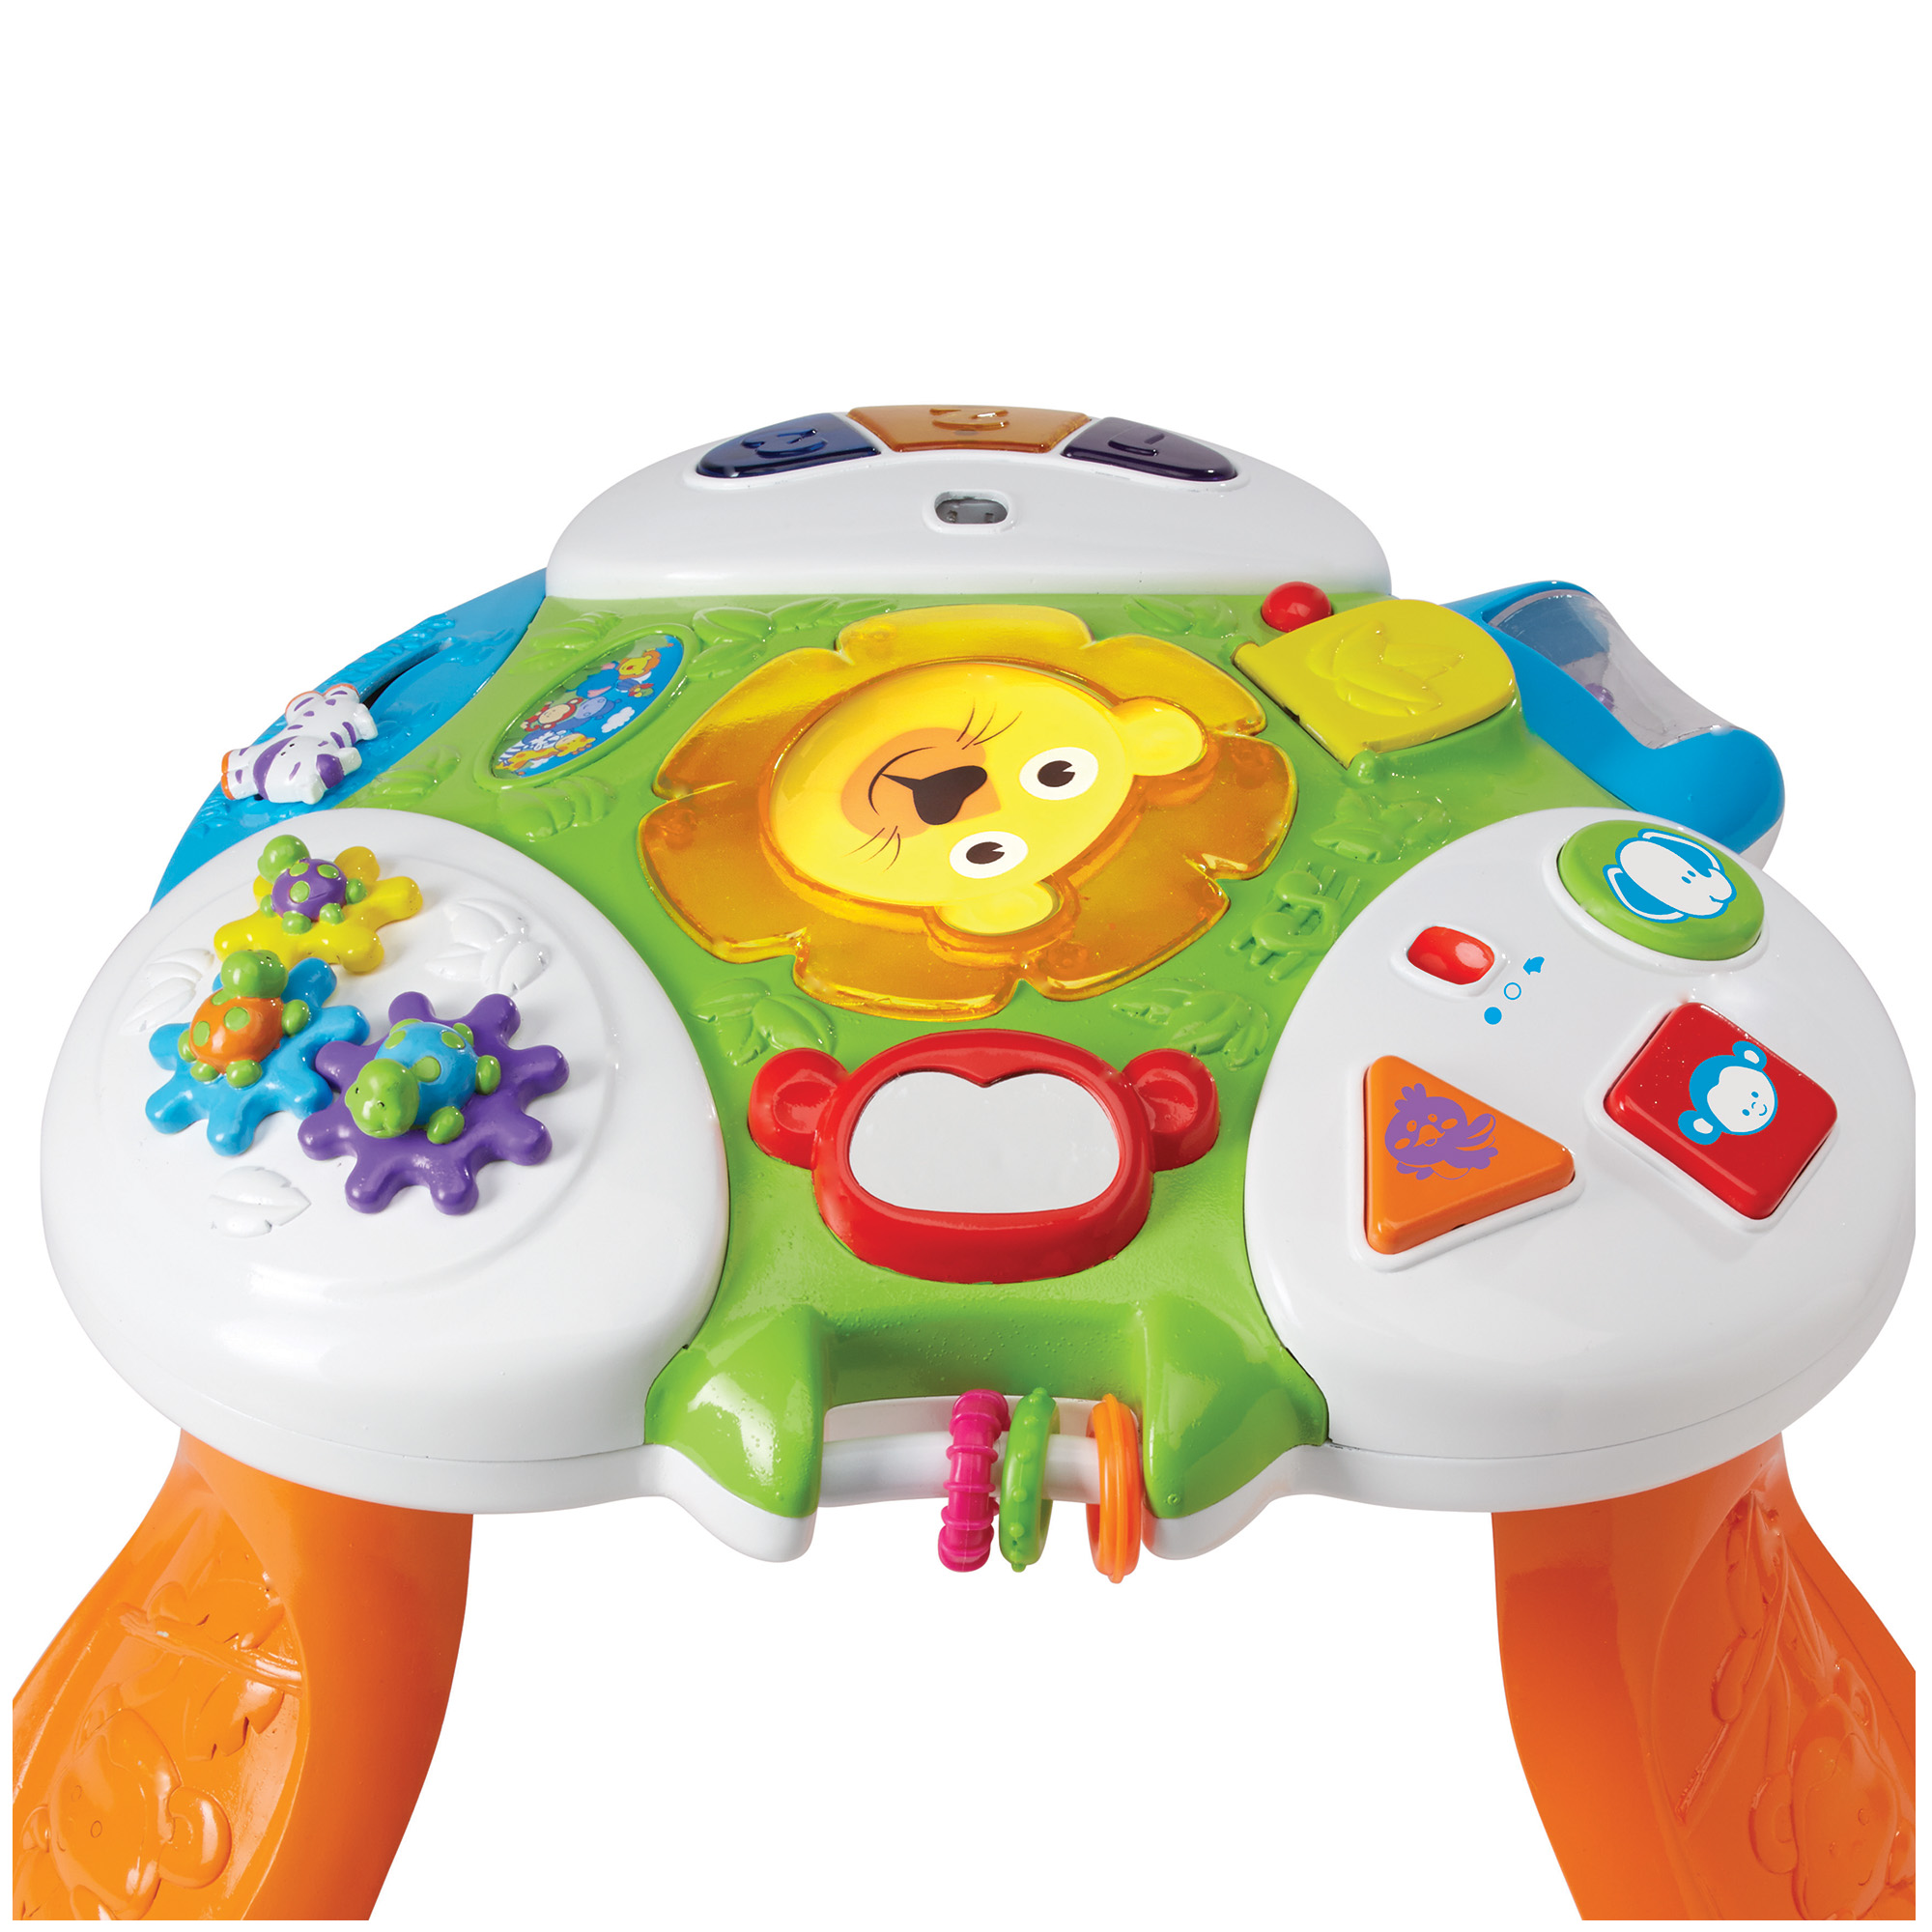 Kid land Toys Light and Sound Discovery Activity Table for